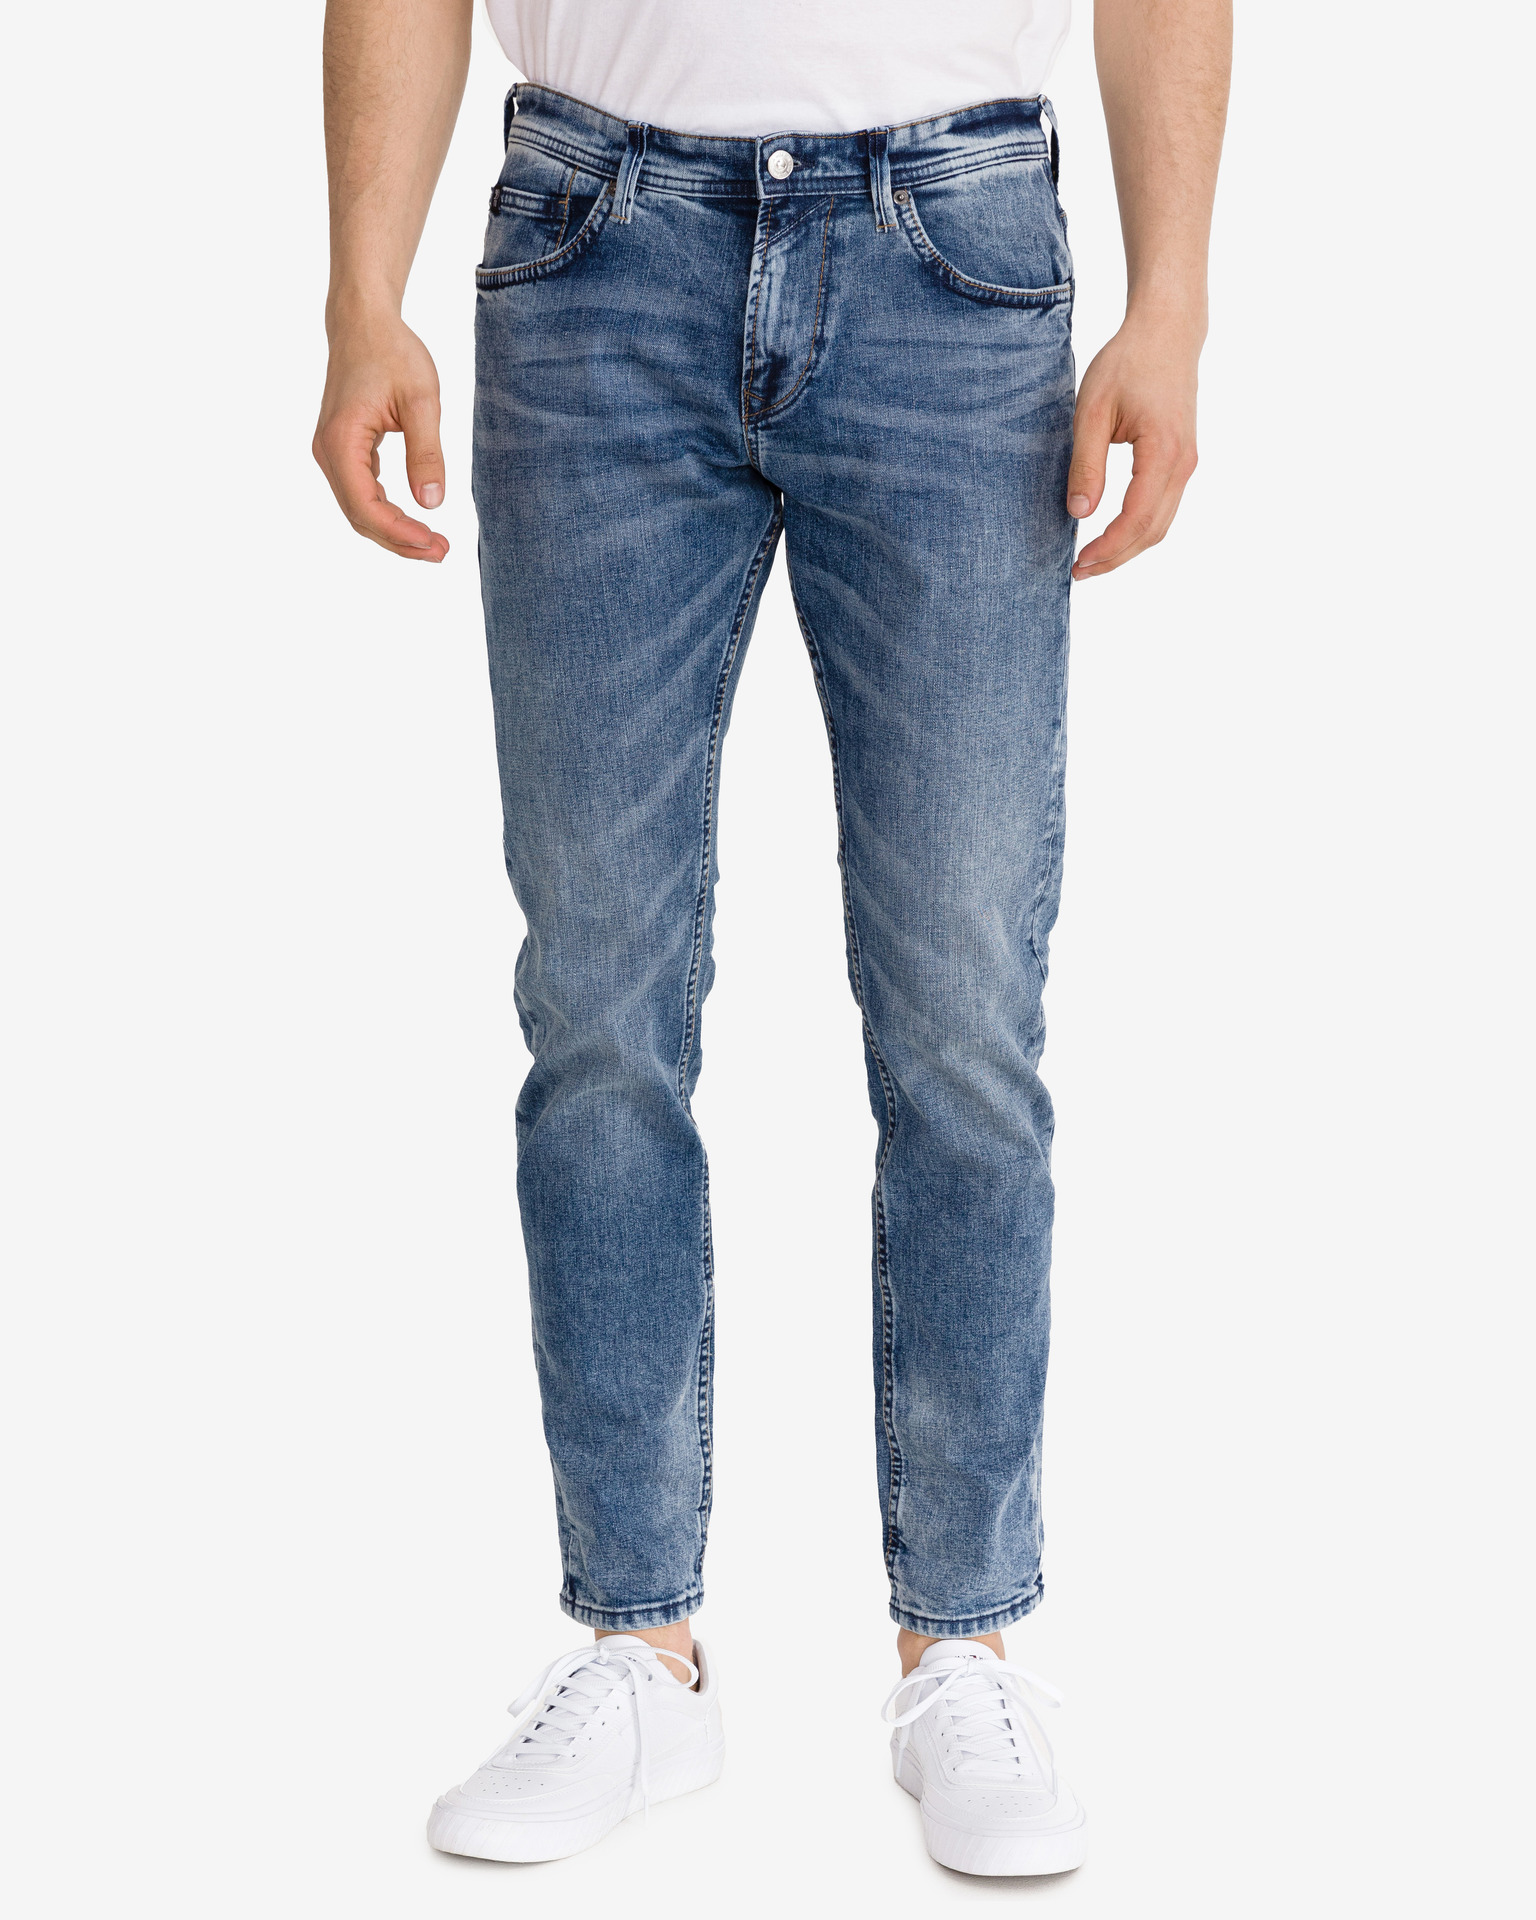 Piers Jeans Tom Tailor Denim